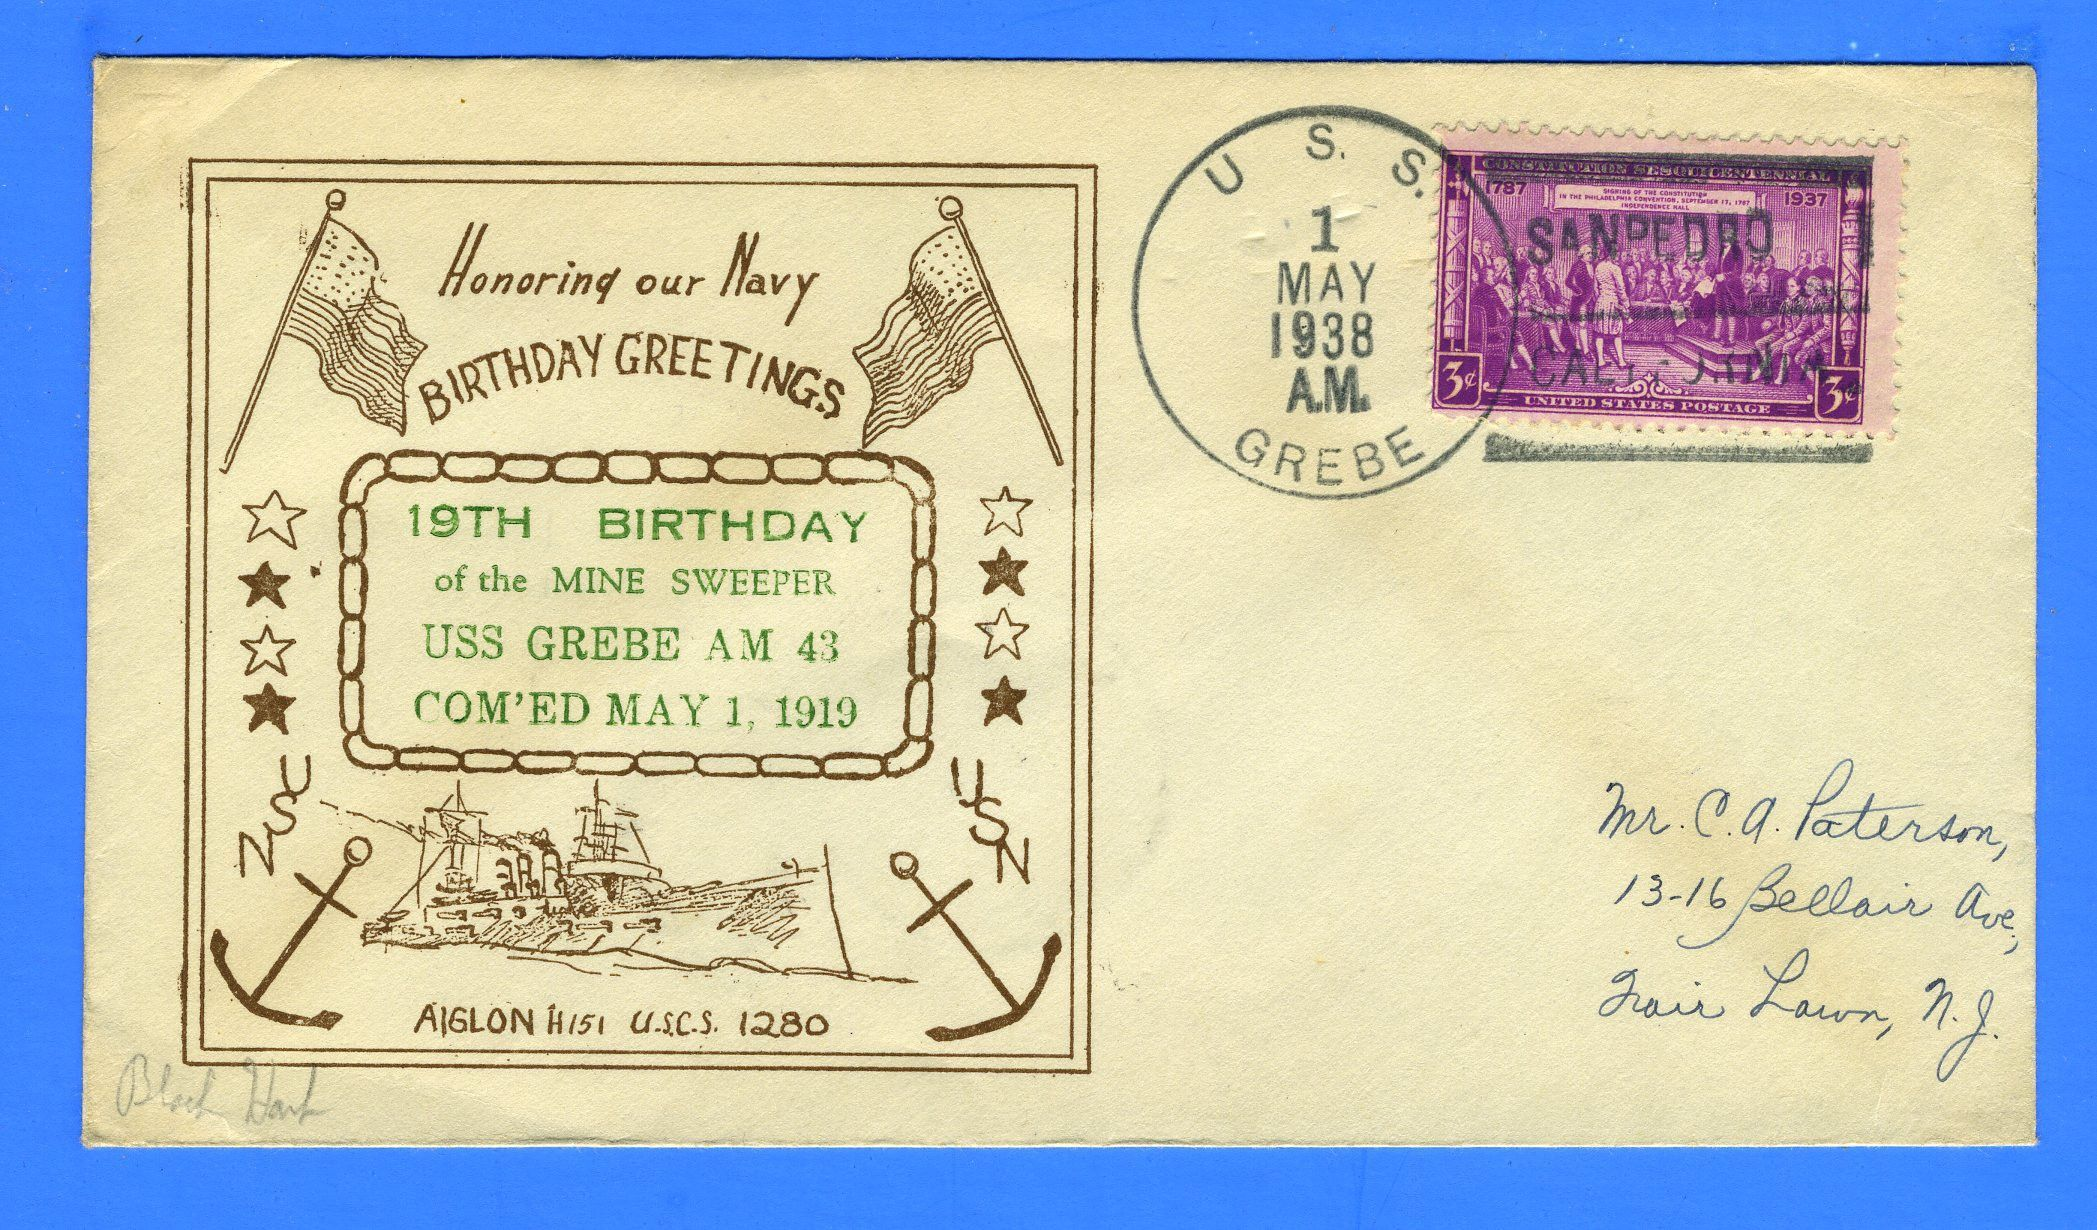 USS Grebe AM43 19th Anniversary of Commissioning May 1